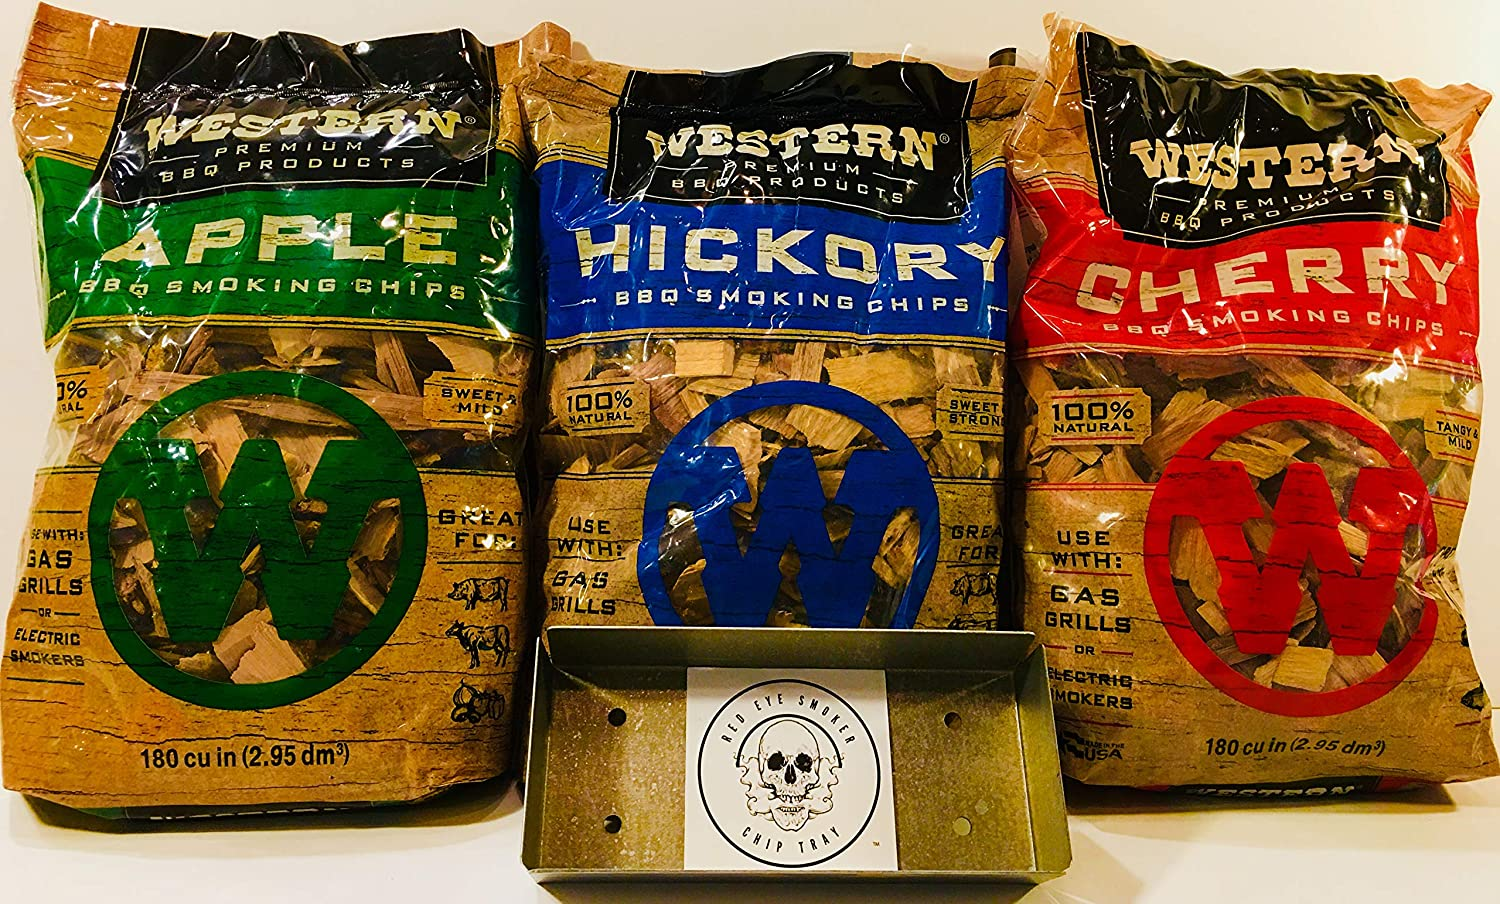 Western Max 69% OFF Popular BBQ Smoking Wood Chip - Pack Bundle Variety 3 Cash special price